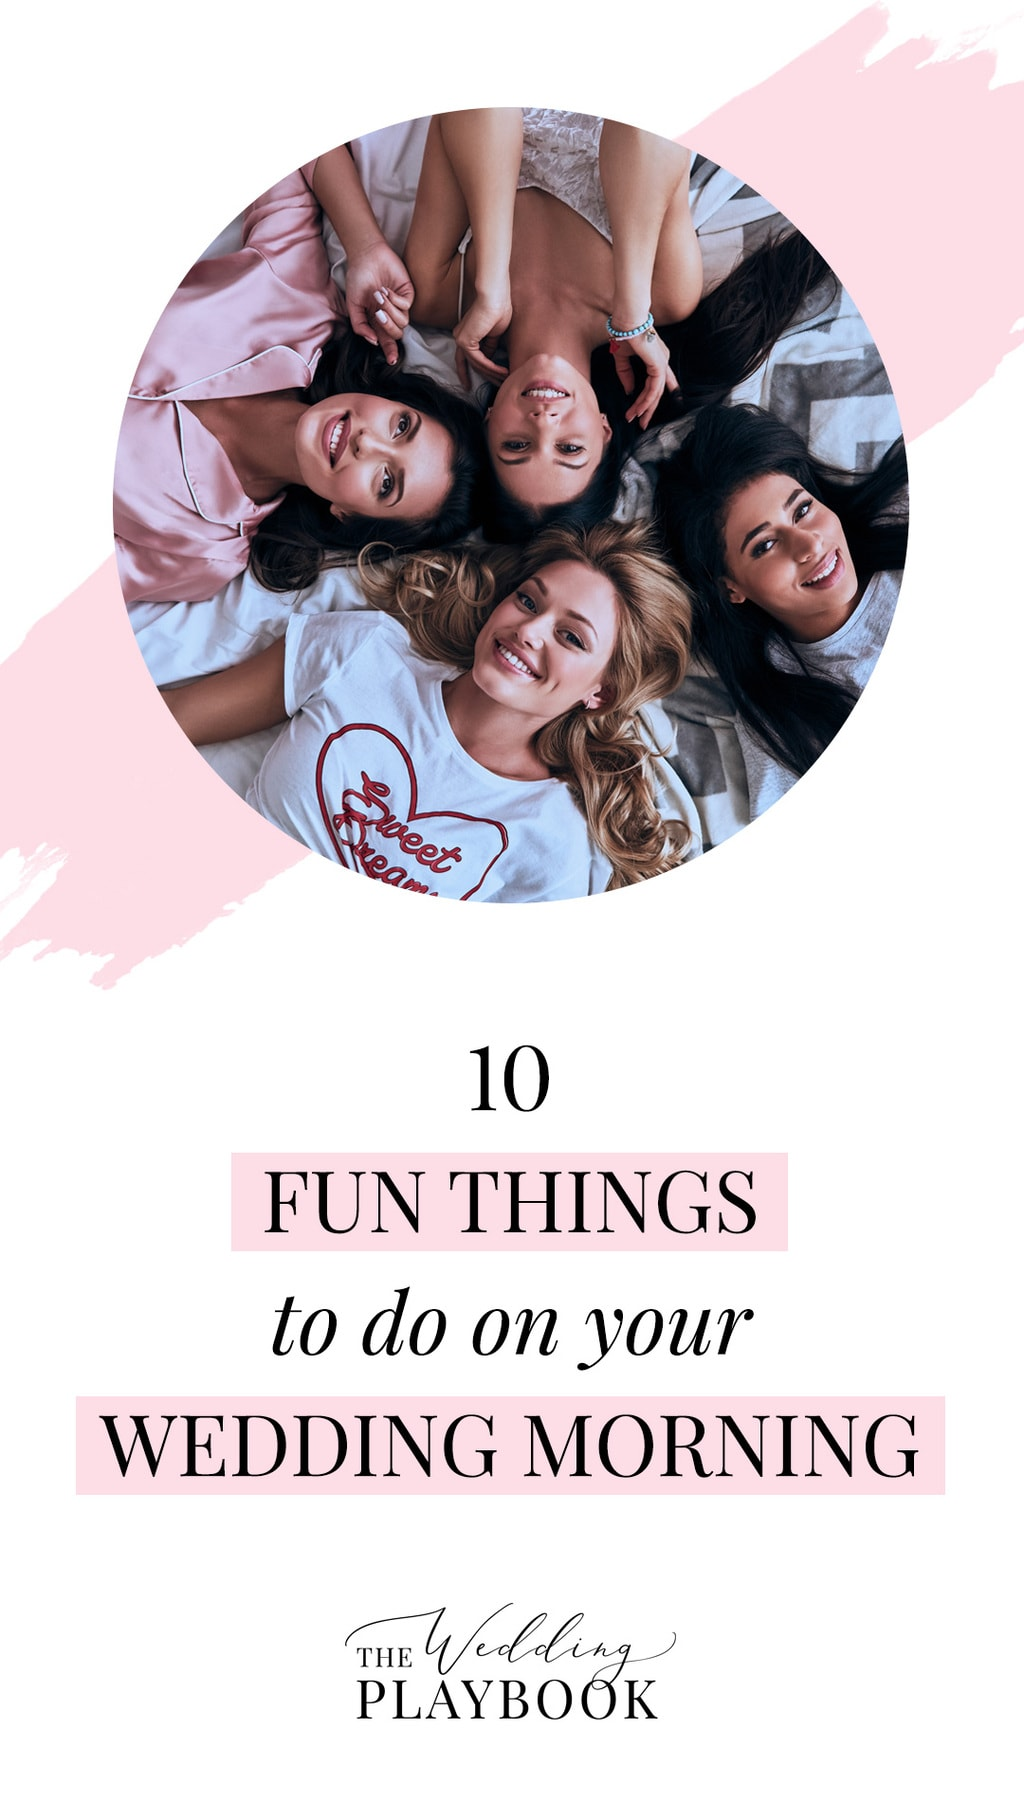 10 Fun Things to Do on Your Wedding Morning with Your Bridesmaids